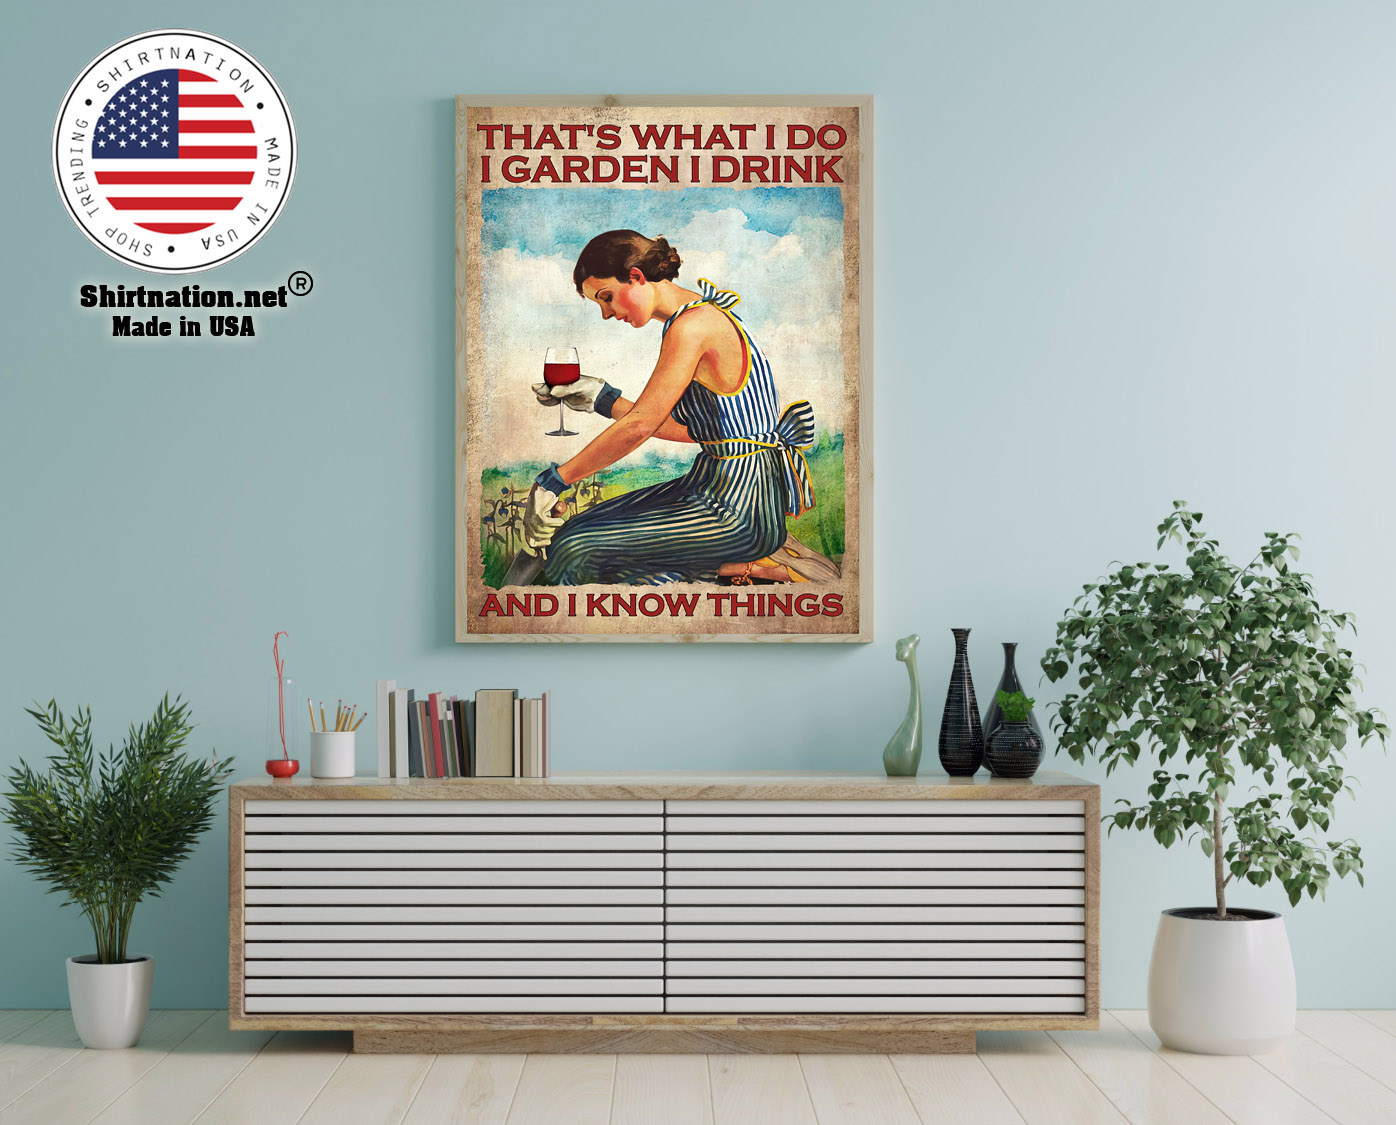 Wine Thats what I do I garden I drink and I know things poster 12